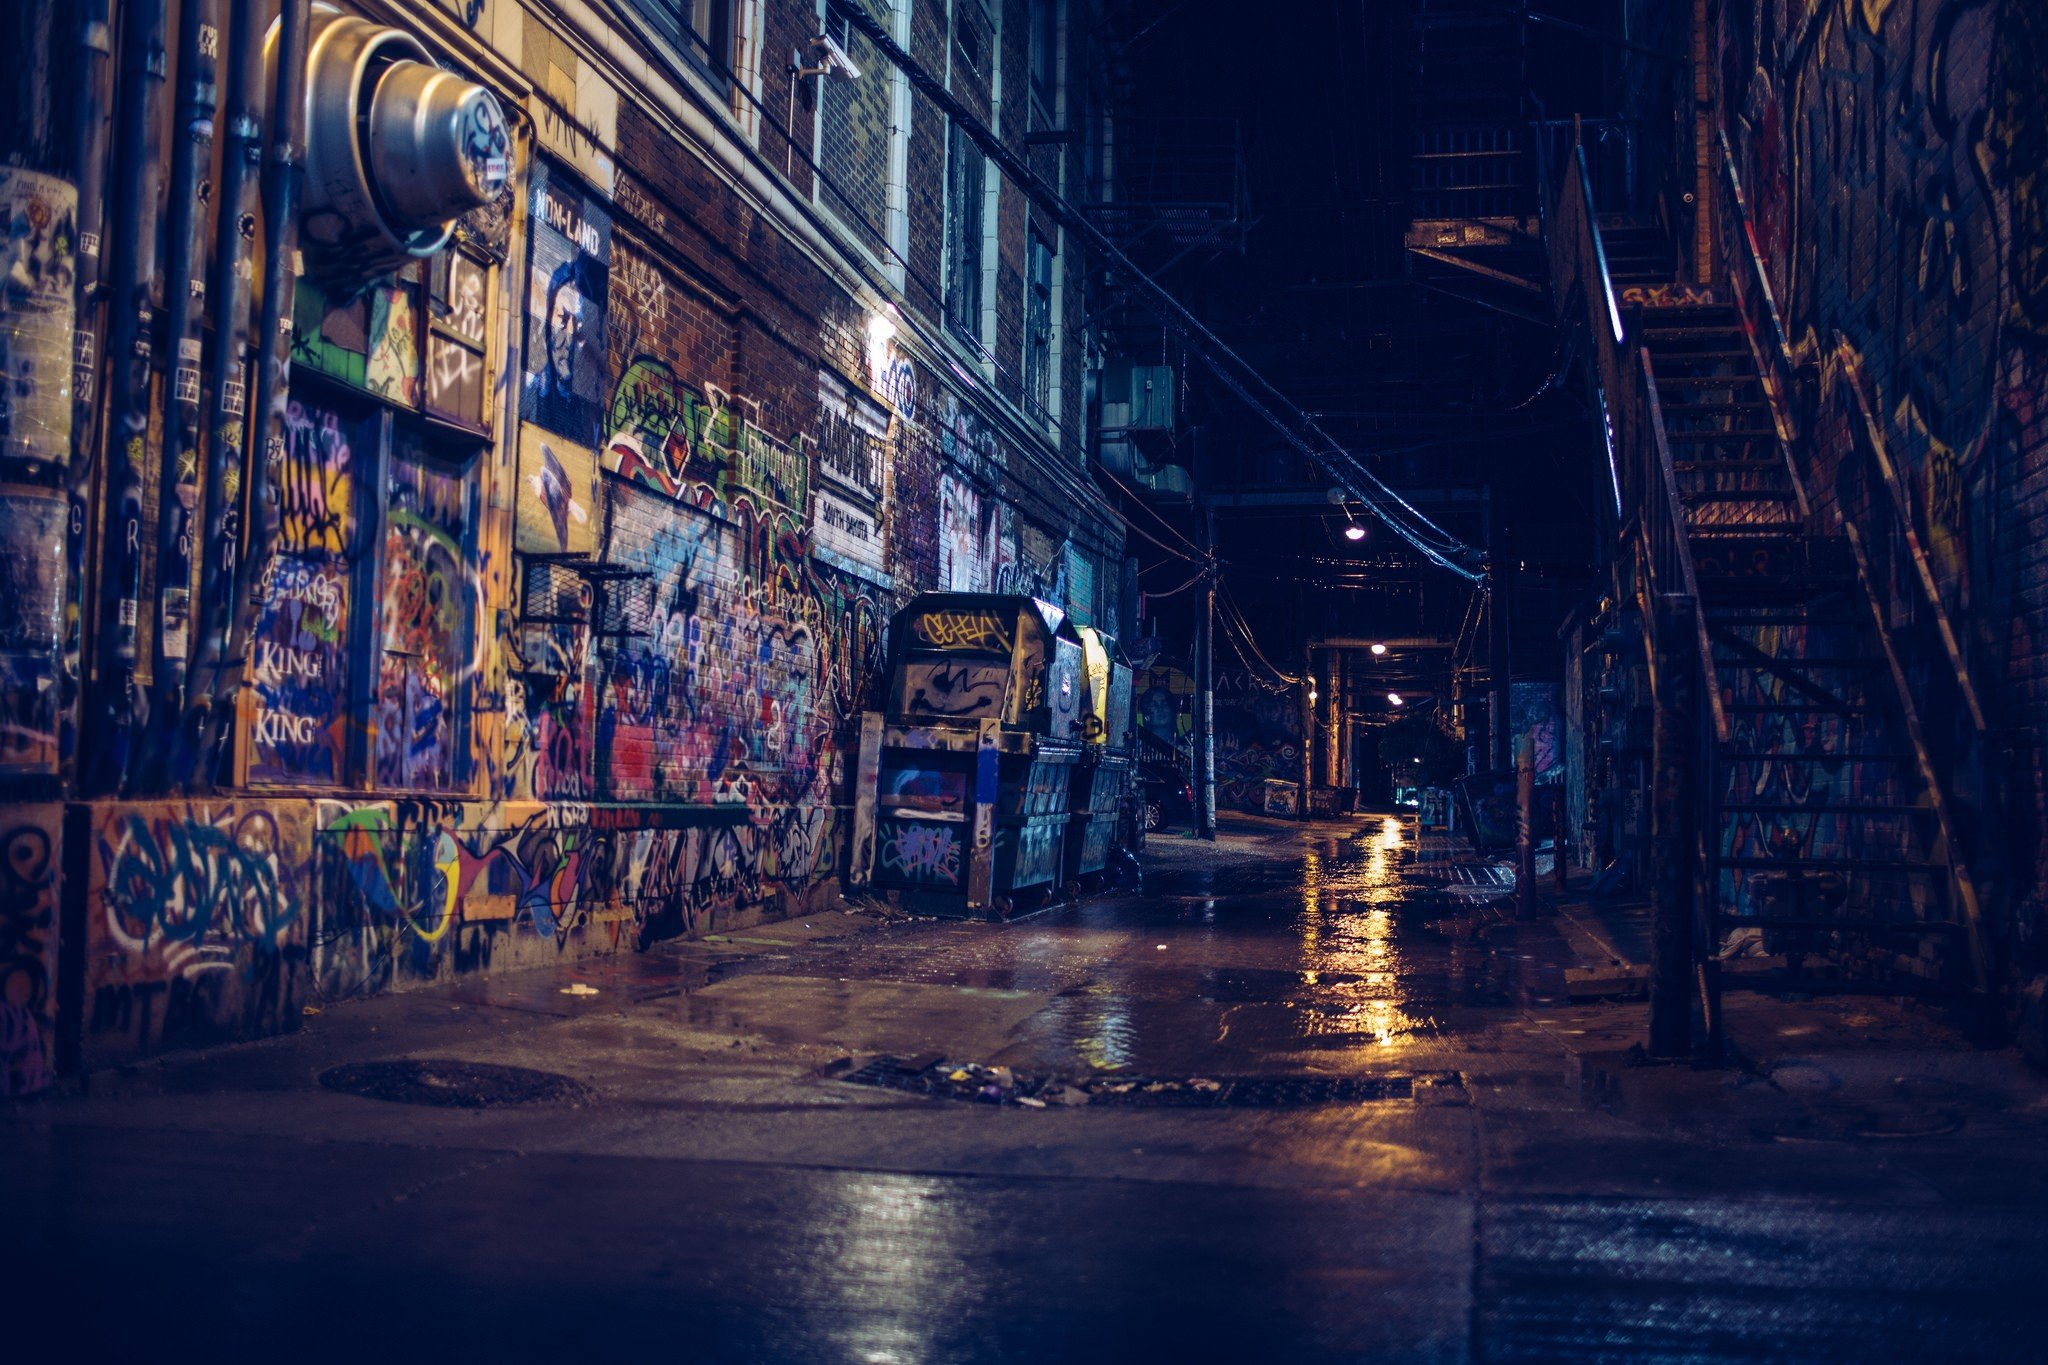 photography, Street, Alleyway, City, Night, Graffiti, Reflection, Building, Stairs Wallpaper